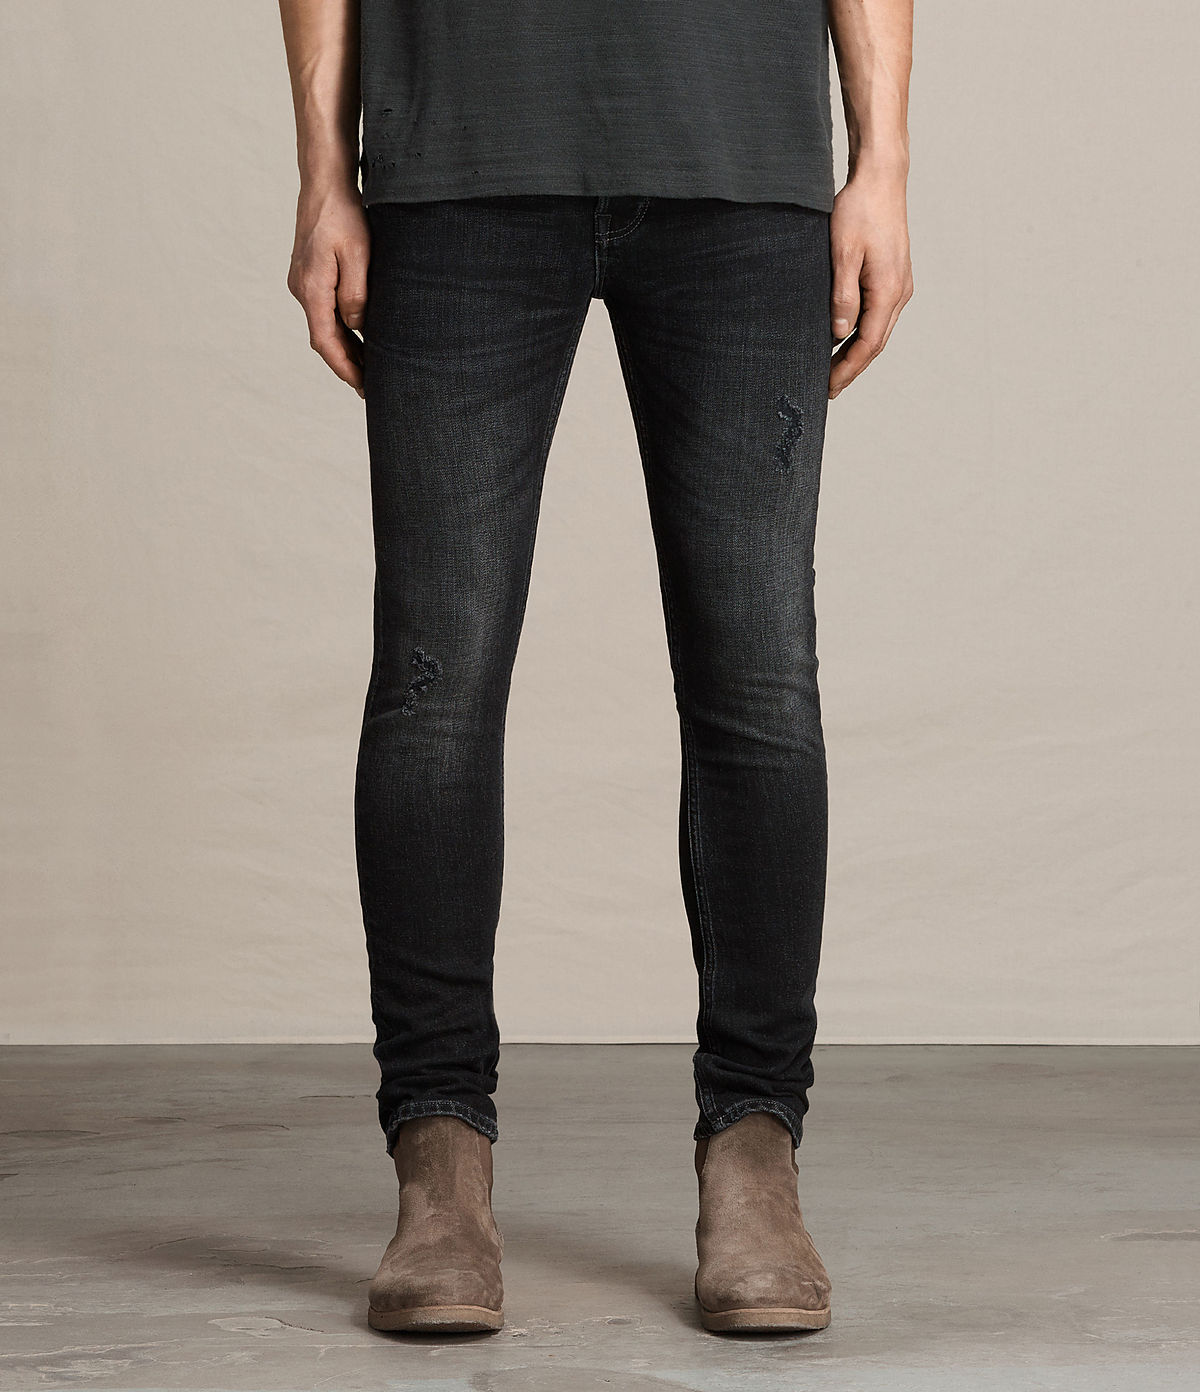 ALLSAINTS UK: Mens Print Cigarette Jeans (Black)